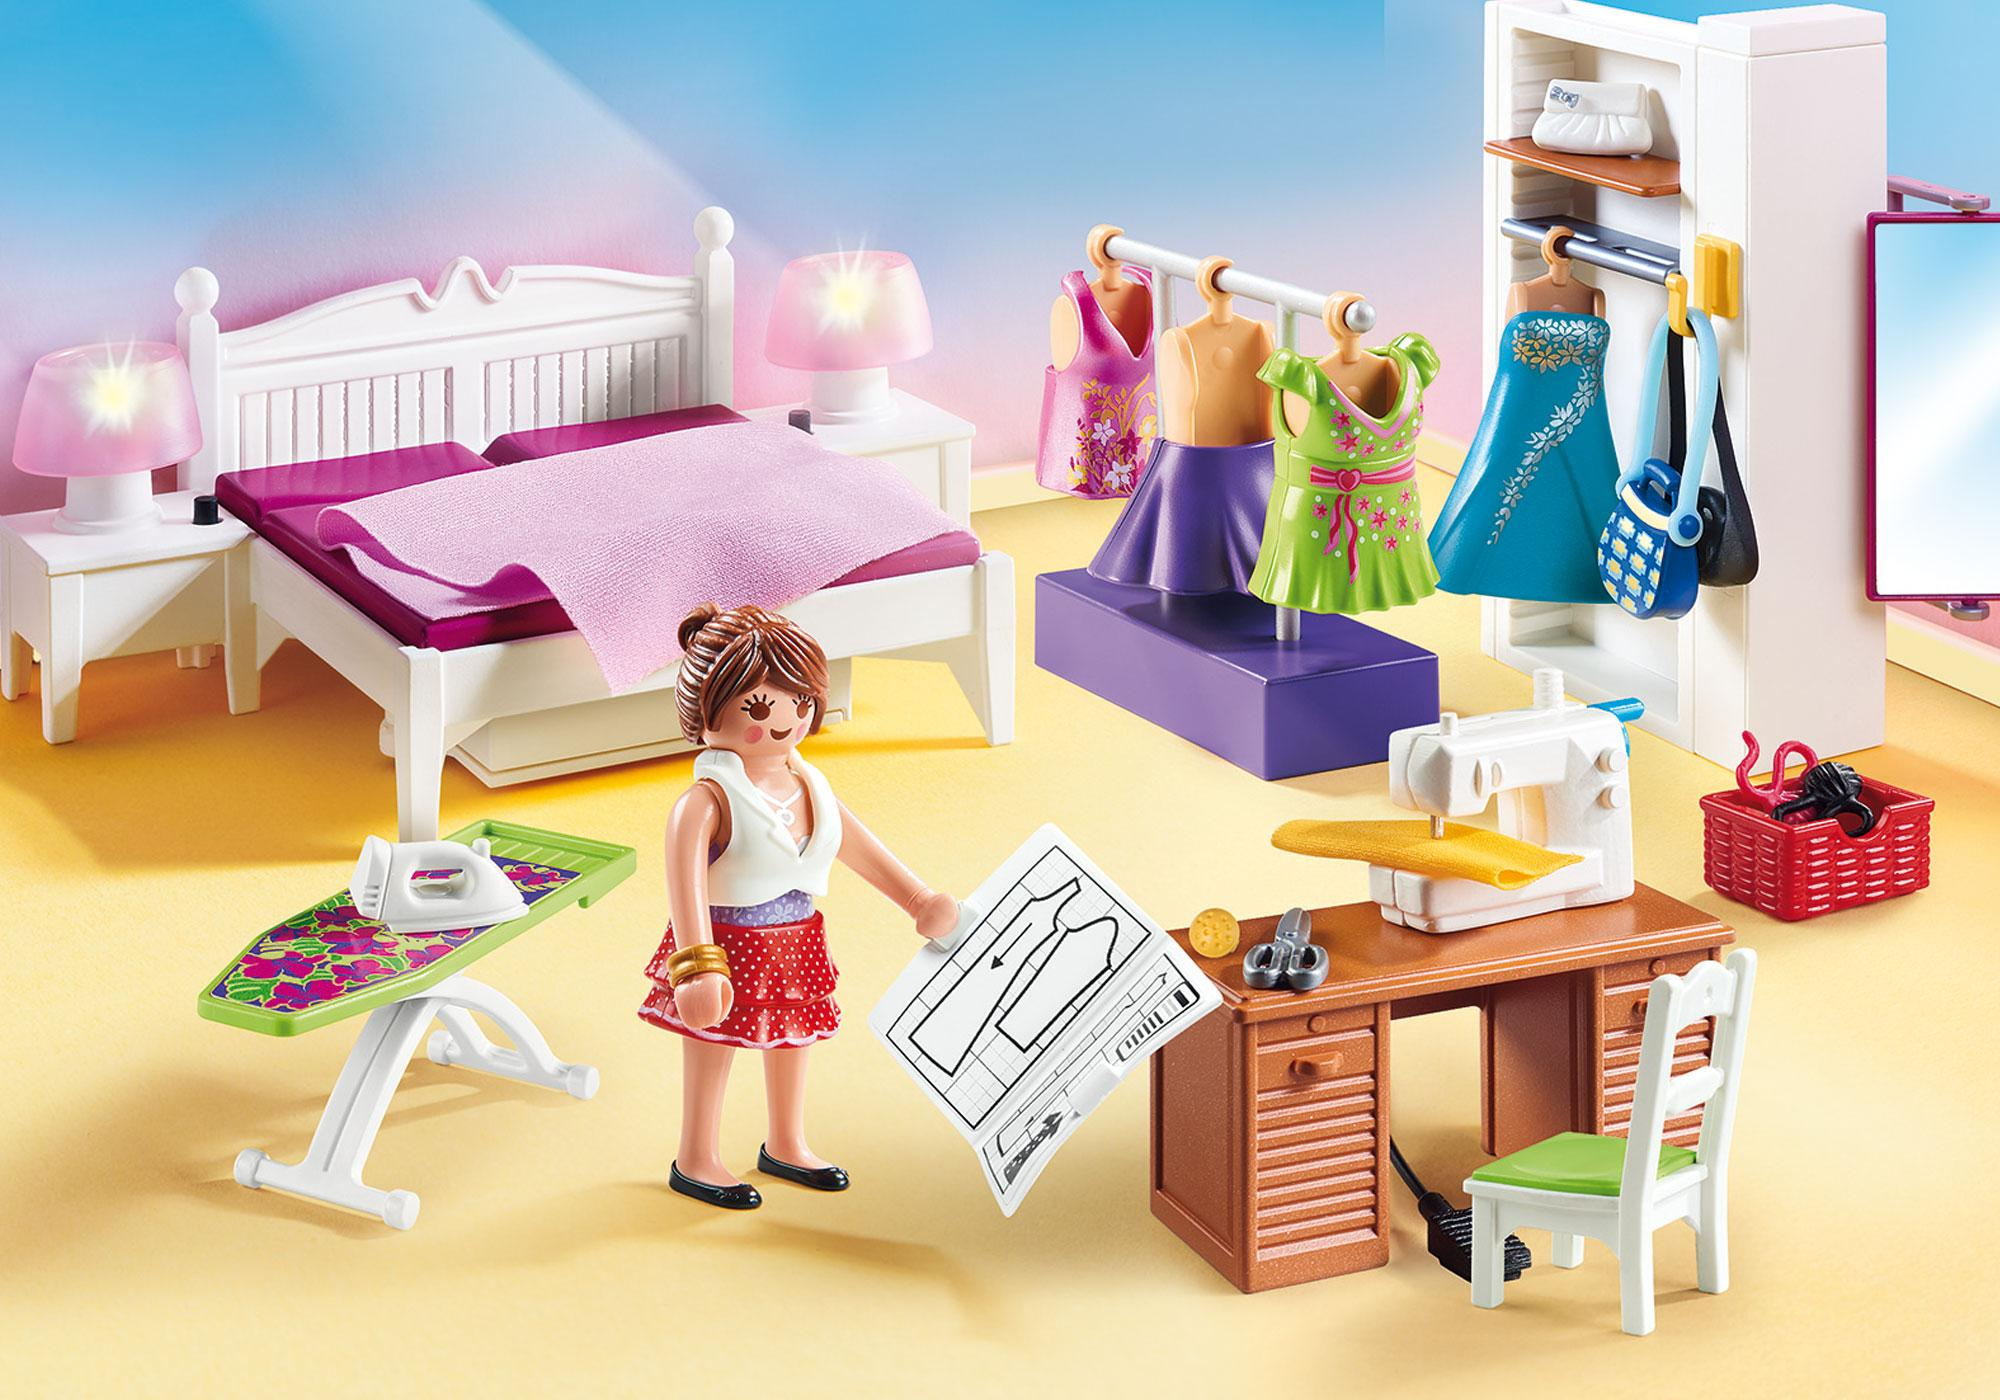 http://media.playmobil.com/i/playmobil/70208_product_detail/Schlafzimmer mit Nähecke